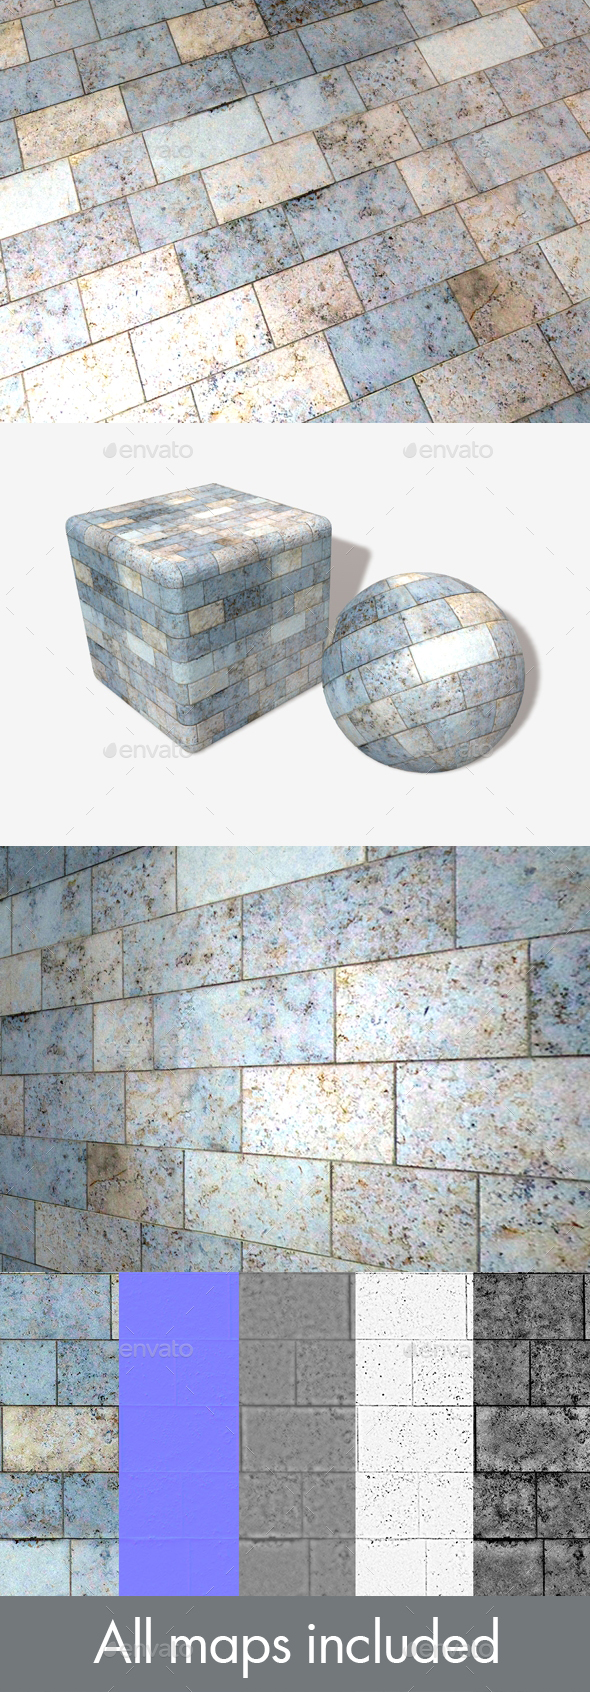 3DOcean Blue Marble Bricks Seamless Texture 19671370